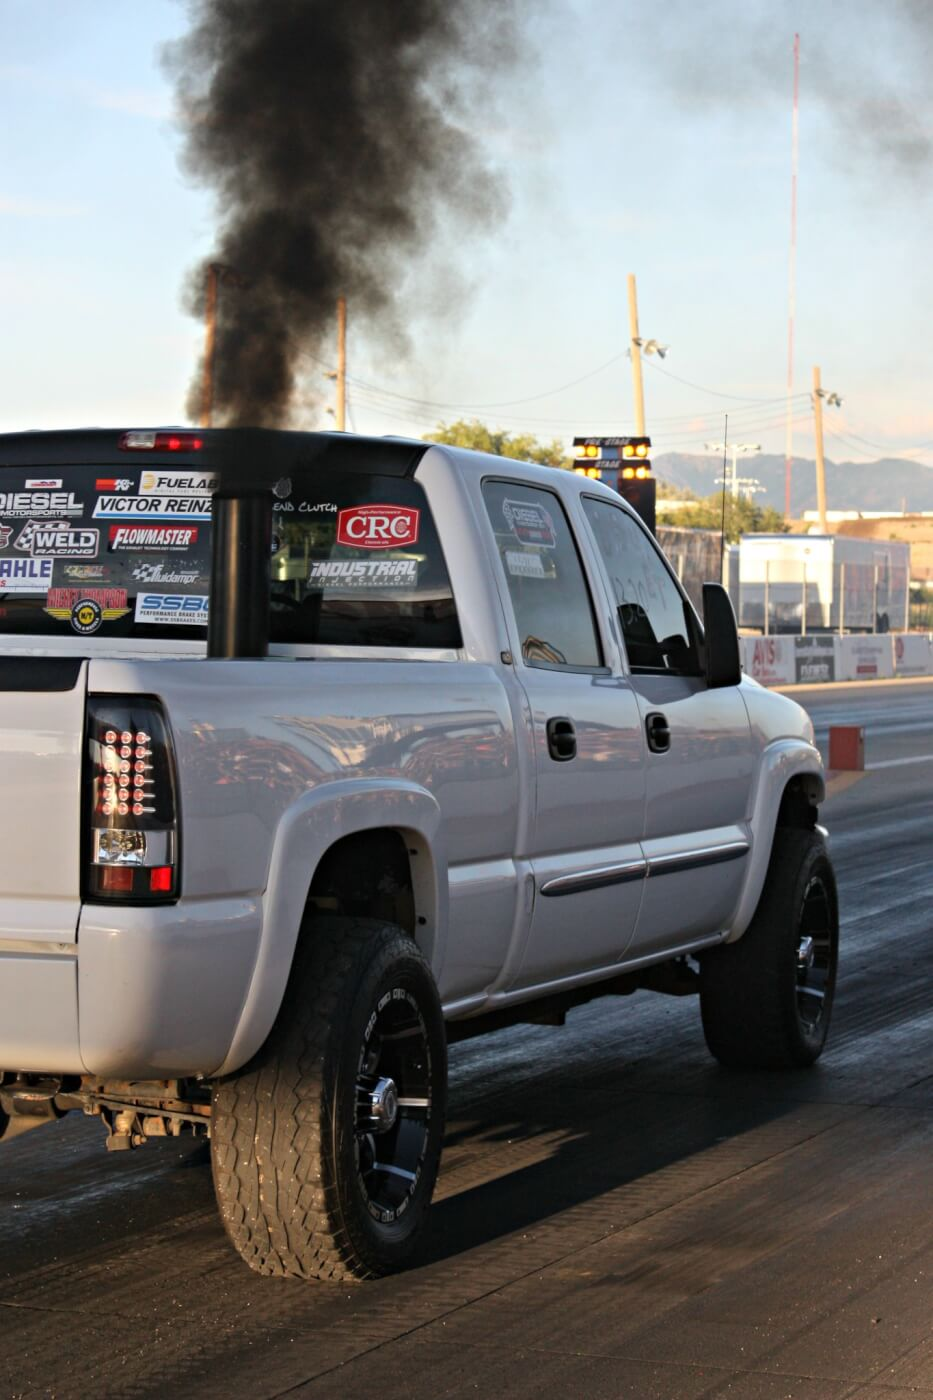 Is there anything better than a little diesel drag racing on a Friday night? We don't think so either.